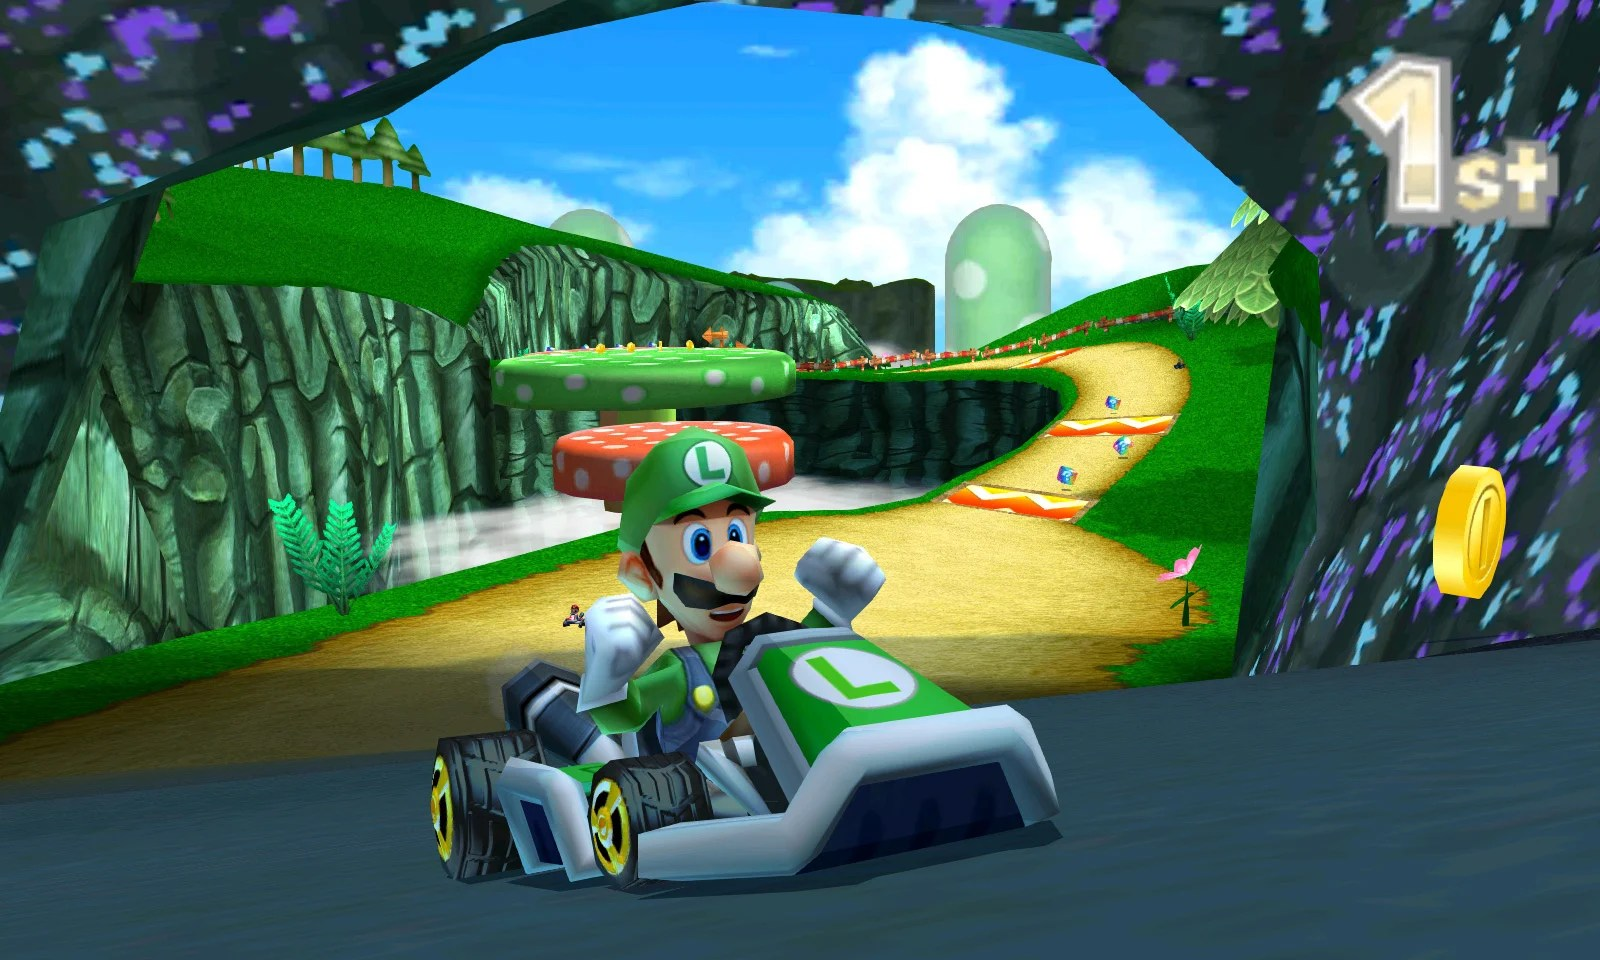 Nintendo 3ds Games Sure Look Pretty In High Definition